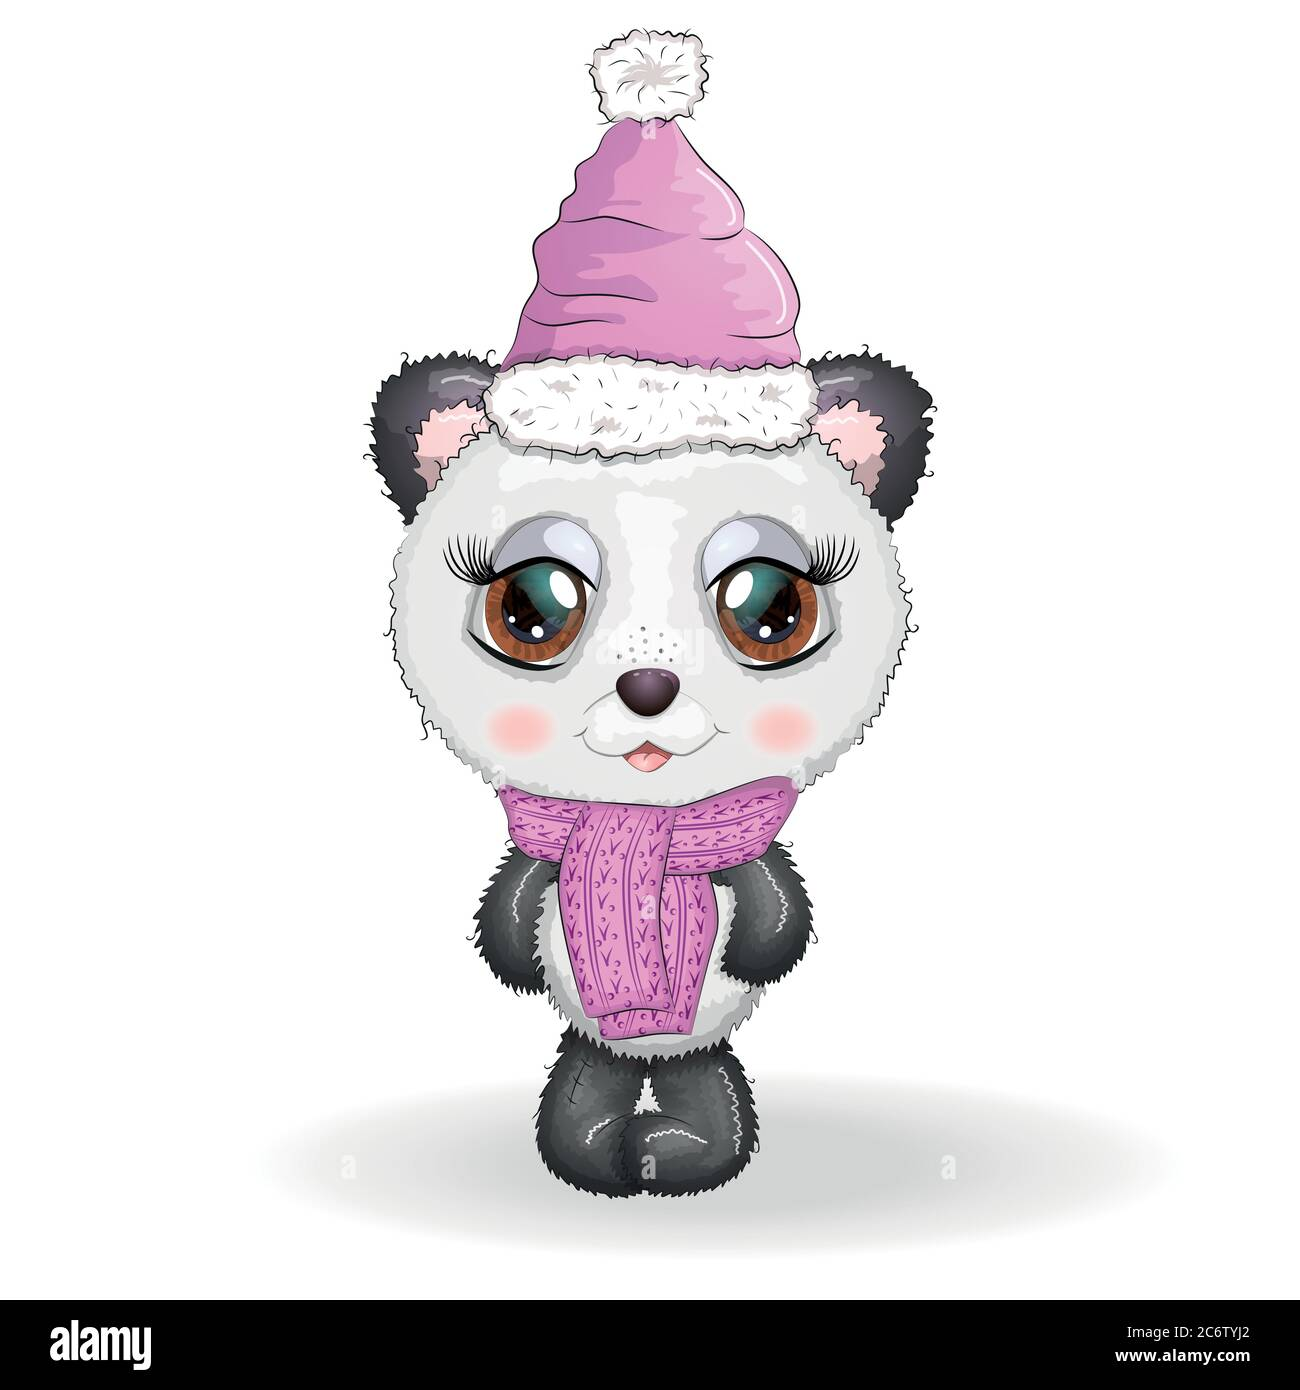 Cute Cartoon Panda Bear With Big Eyes In A Scarf And Hat Boy And